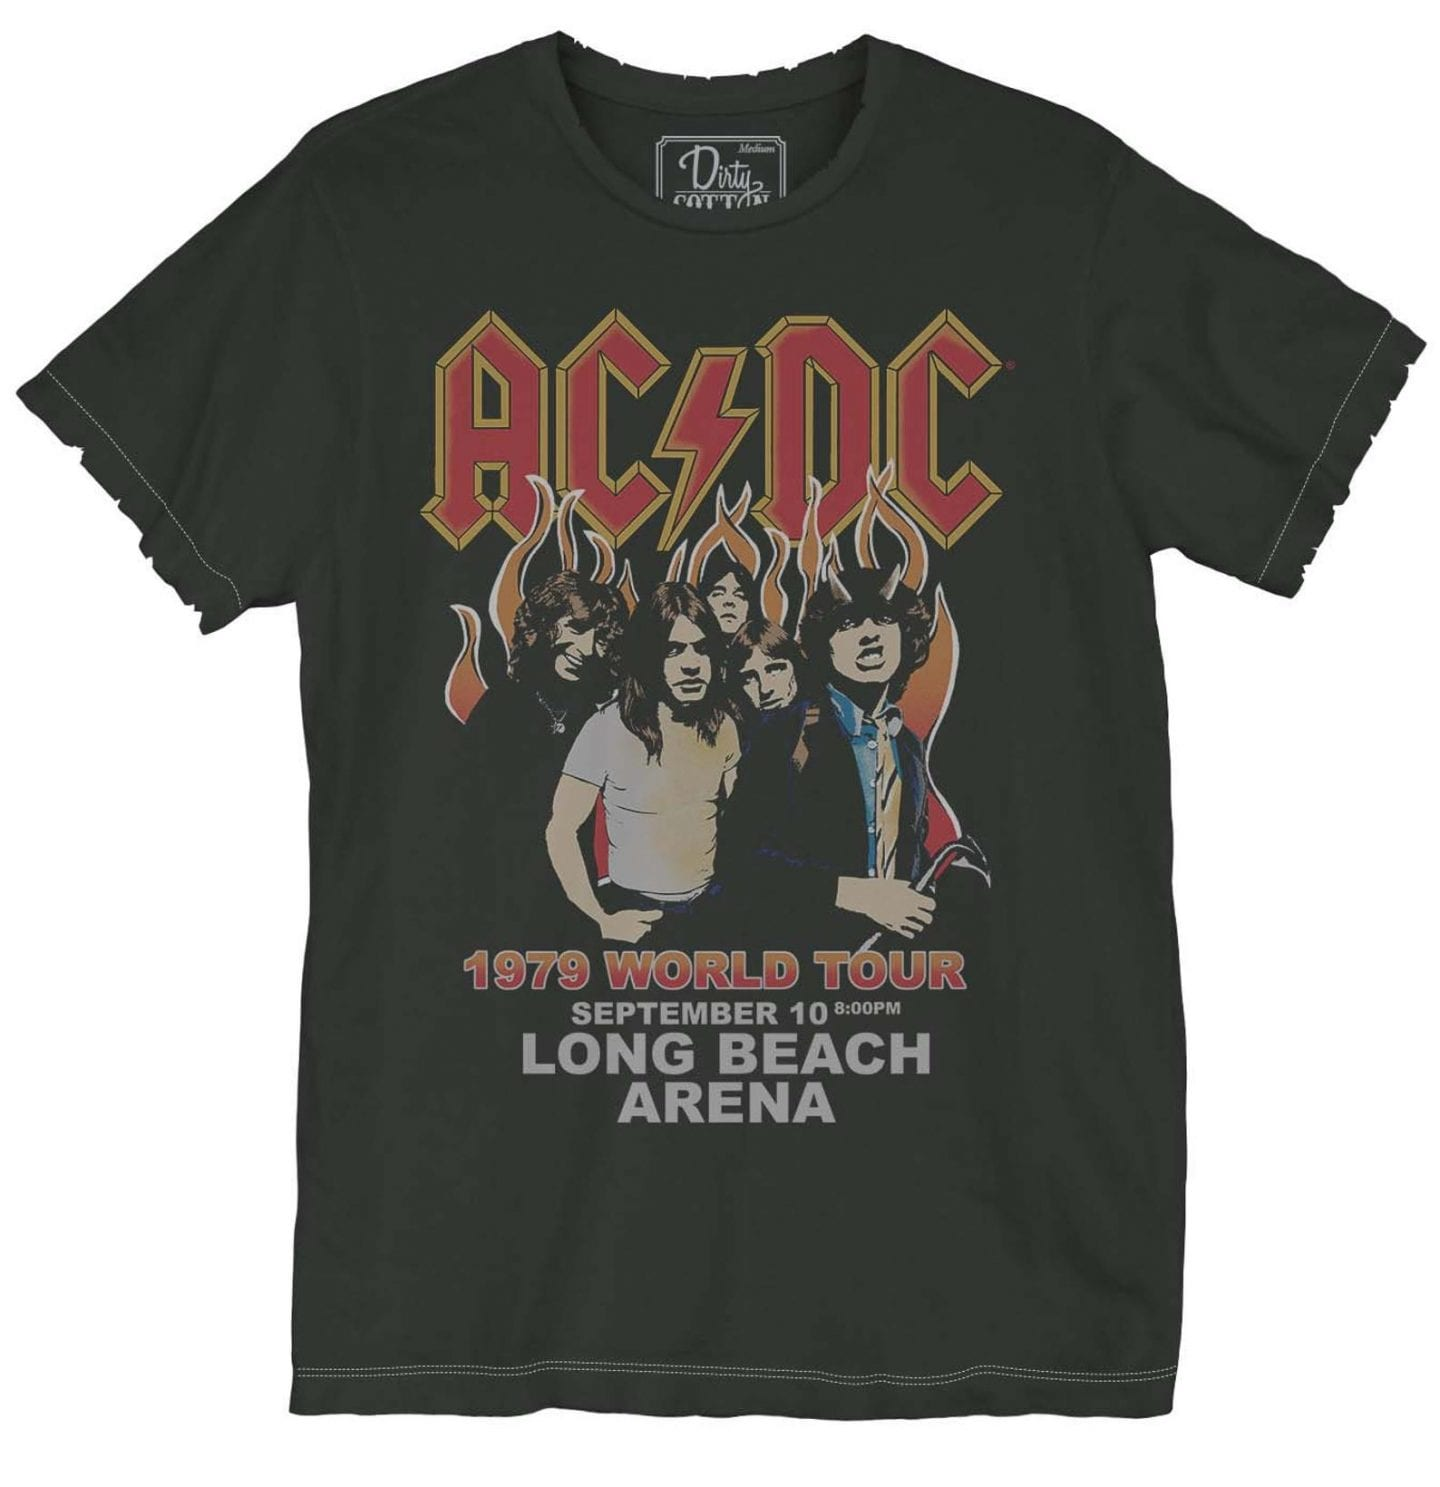 ACDC Tee Shirt Just Add Glam | 30 BEST VINTAGE BAND TEES by popular San Francisco life and style blog, Just Add Glam: image of a vintage AC/DC tee.